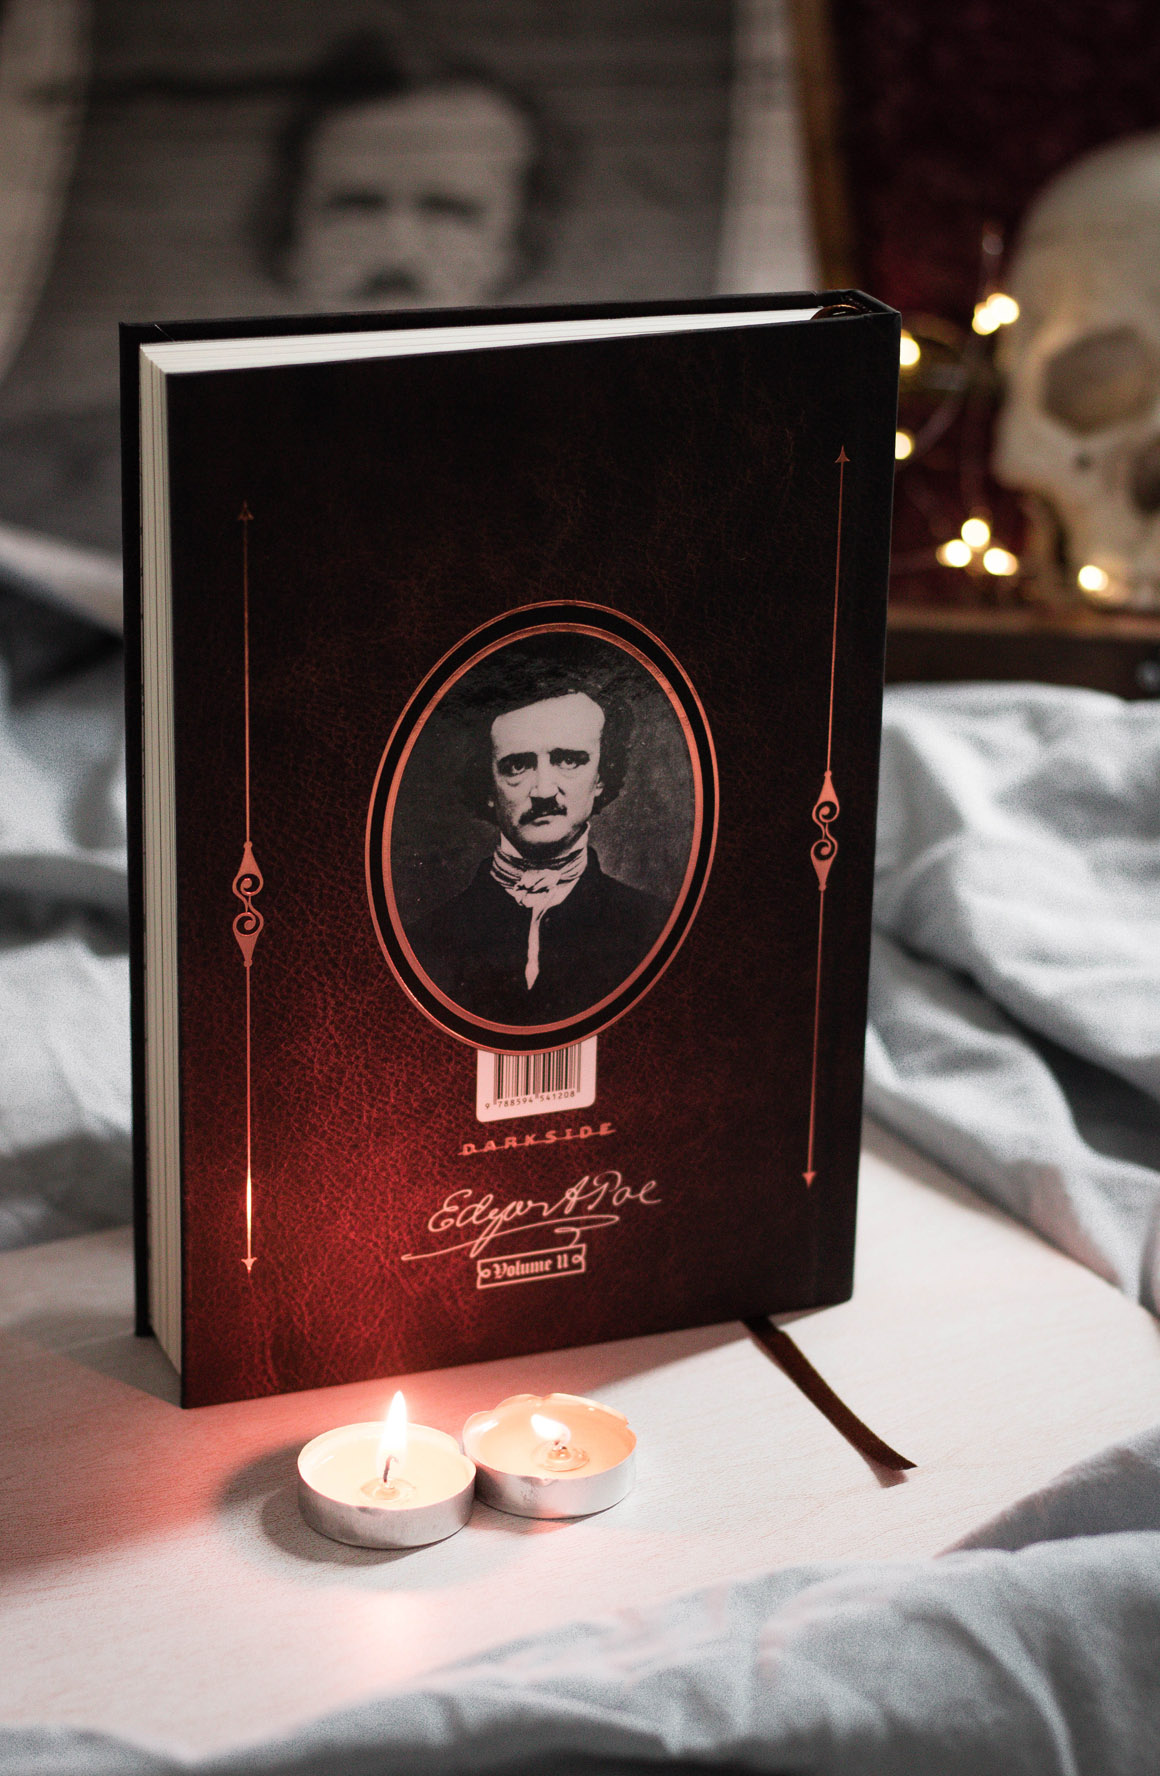 Edgar Allan Poe Darkside Books Medo Clássico Vol. 1